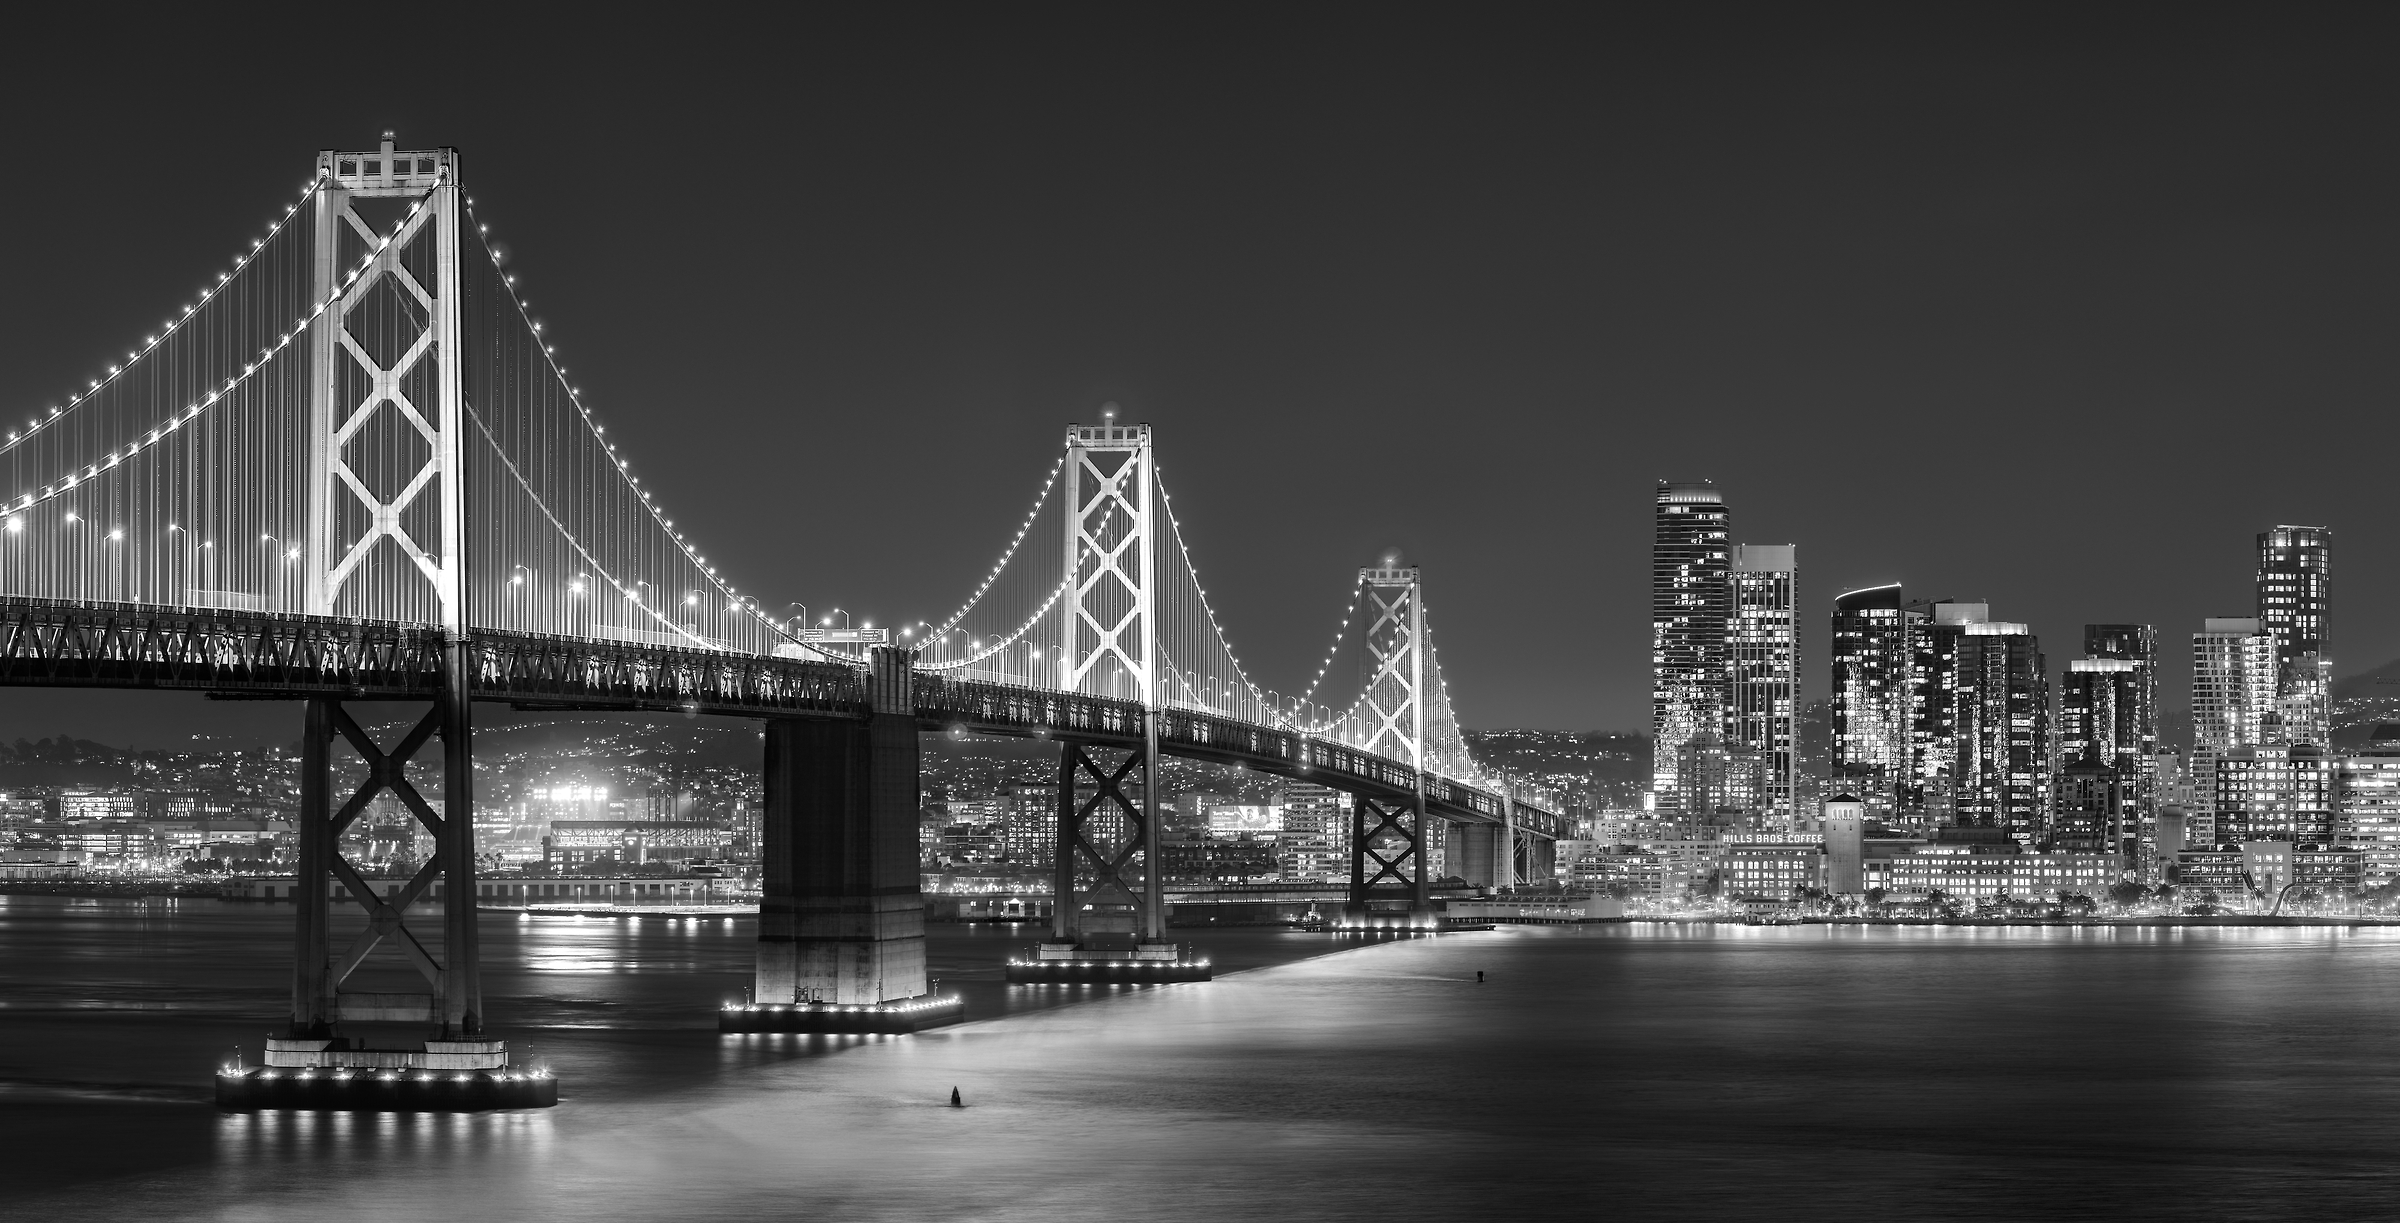 266 megapixels! A very high resolution, large-format VAST photo print of the San Francisco Bay Bridge; black & white photograph created by Jim Tarpo in Yerba Buena Island and Treasure Island, San Francisco, California